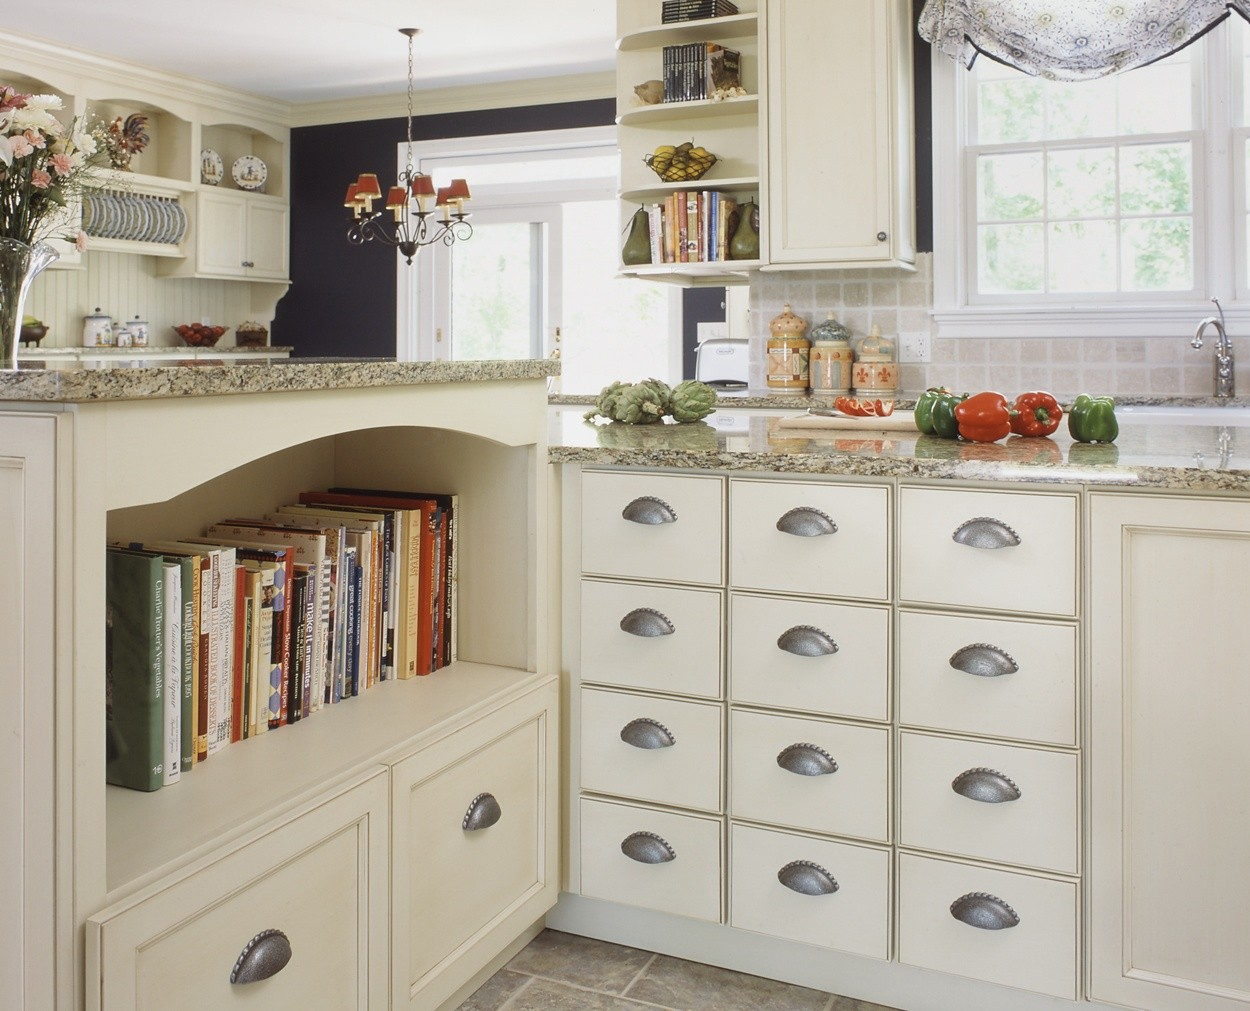 cookbooks and spice drawers